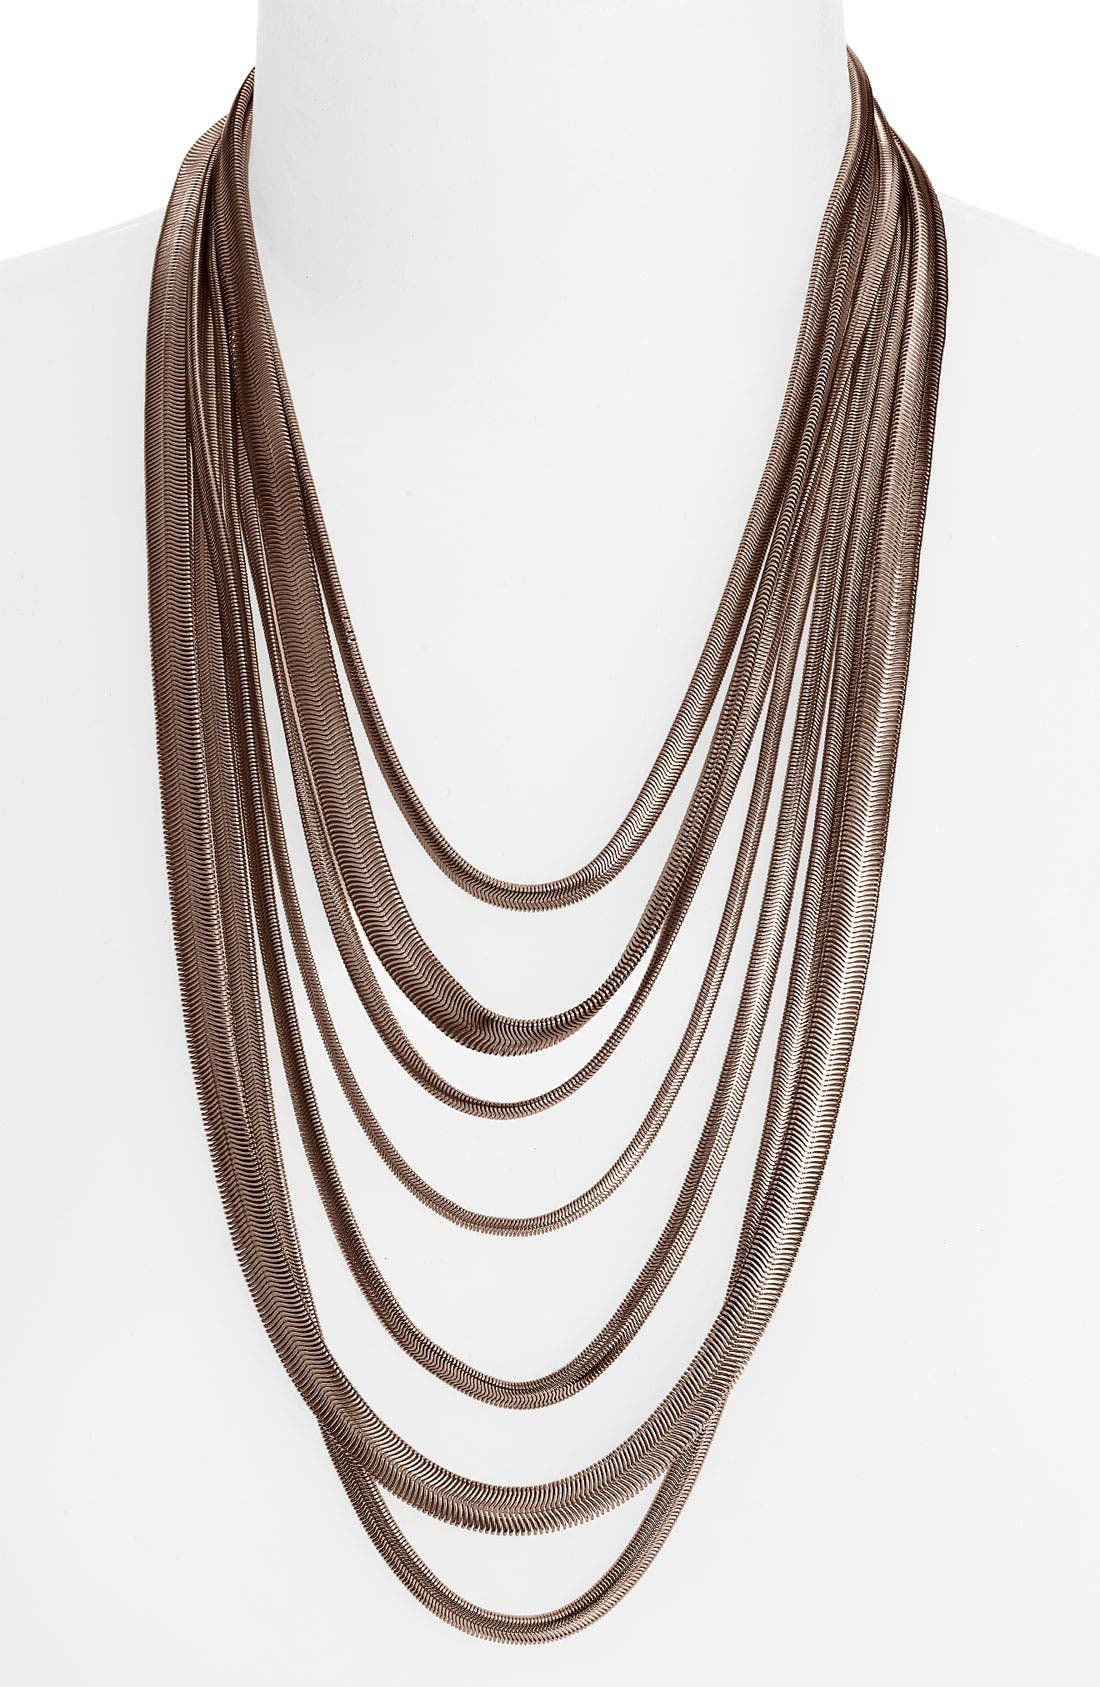 Main Image - Nordstrom Multi Row Chain Necklace